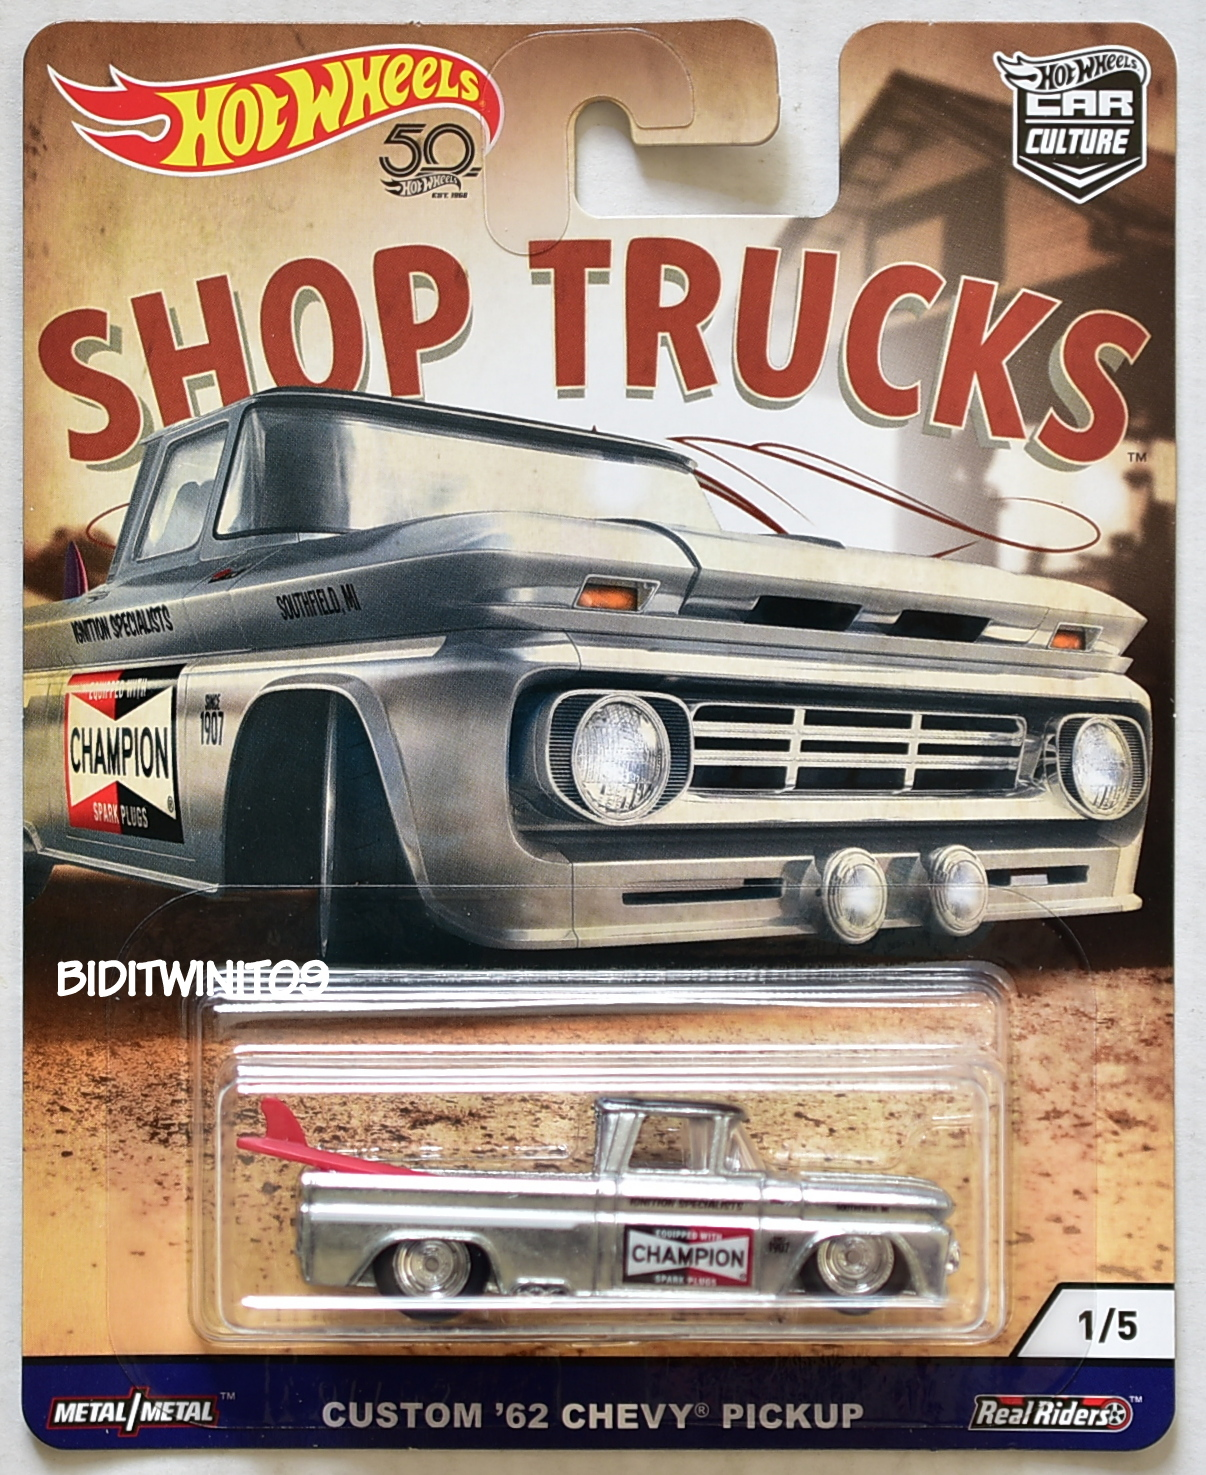 HOT WHEELS 2018 CAR CULTURE SHOP TRUCKS CUSTOM '62 CHEVY PICKUP